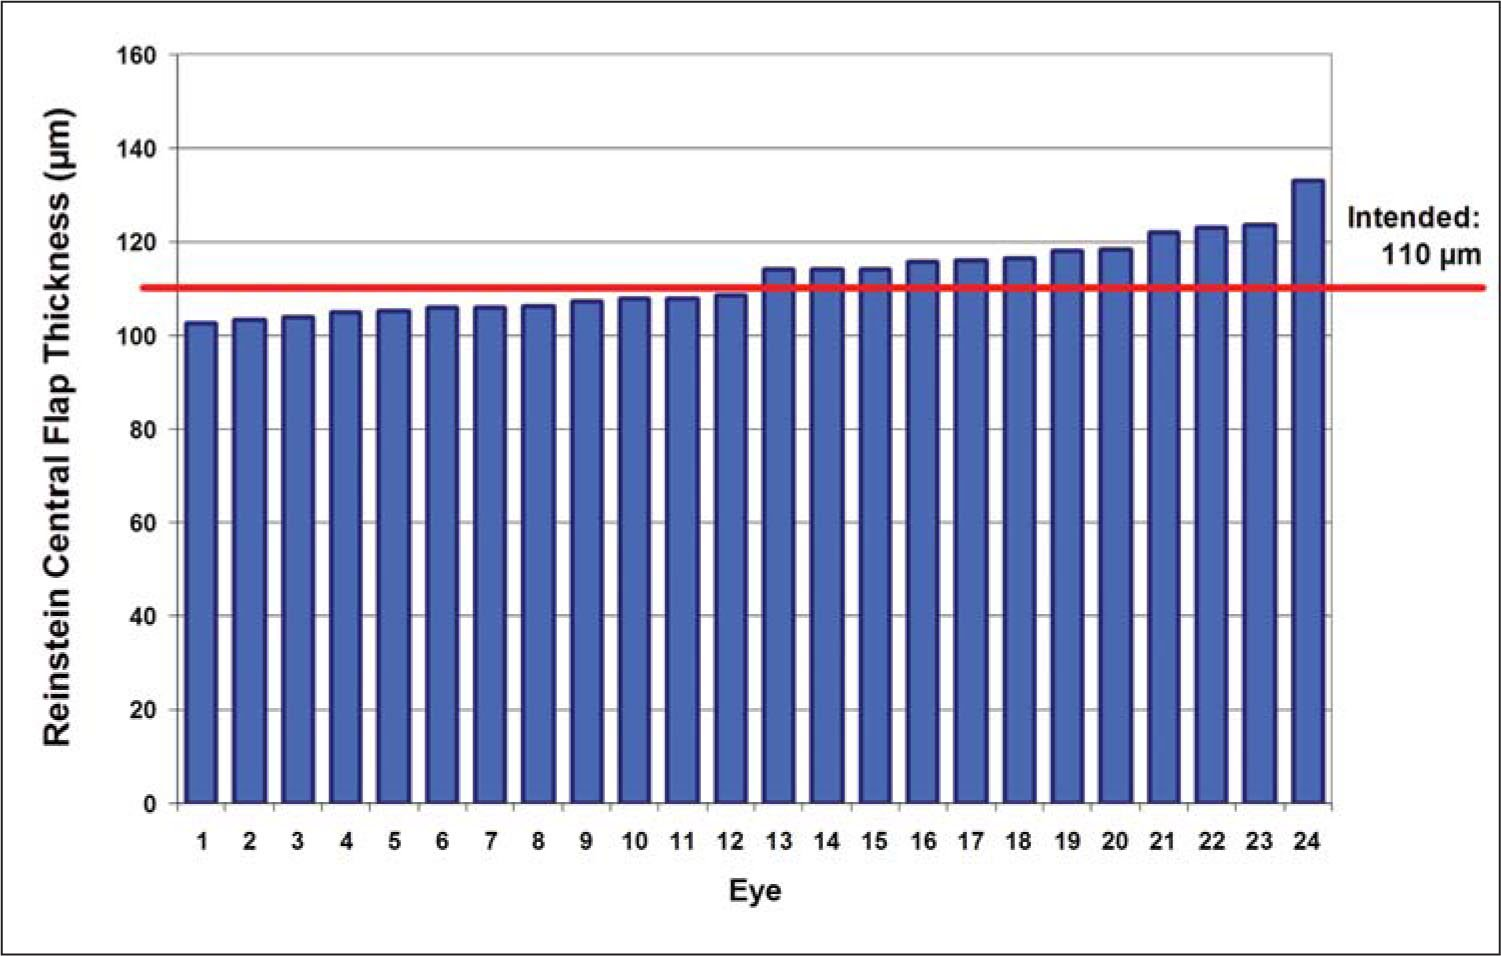 Distribution of Flap Thickness in 24 Myopic Eyes Treated with the VisuMax Femtosecond Laser System and MEL 80 Excimer Laser. The y Axis Represents the Central Reinstein Flap Thickness in Microns. Each Blue Bar Represents the Flap Thickness for Each Individual Eye. The Red Line Represents the Intended Flap Thickness of 110 μm.